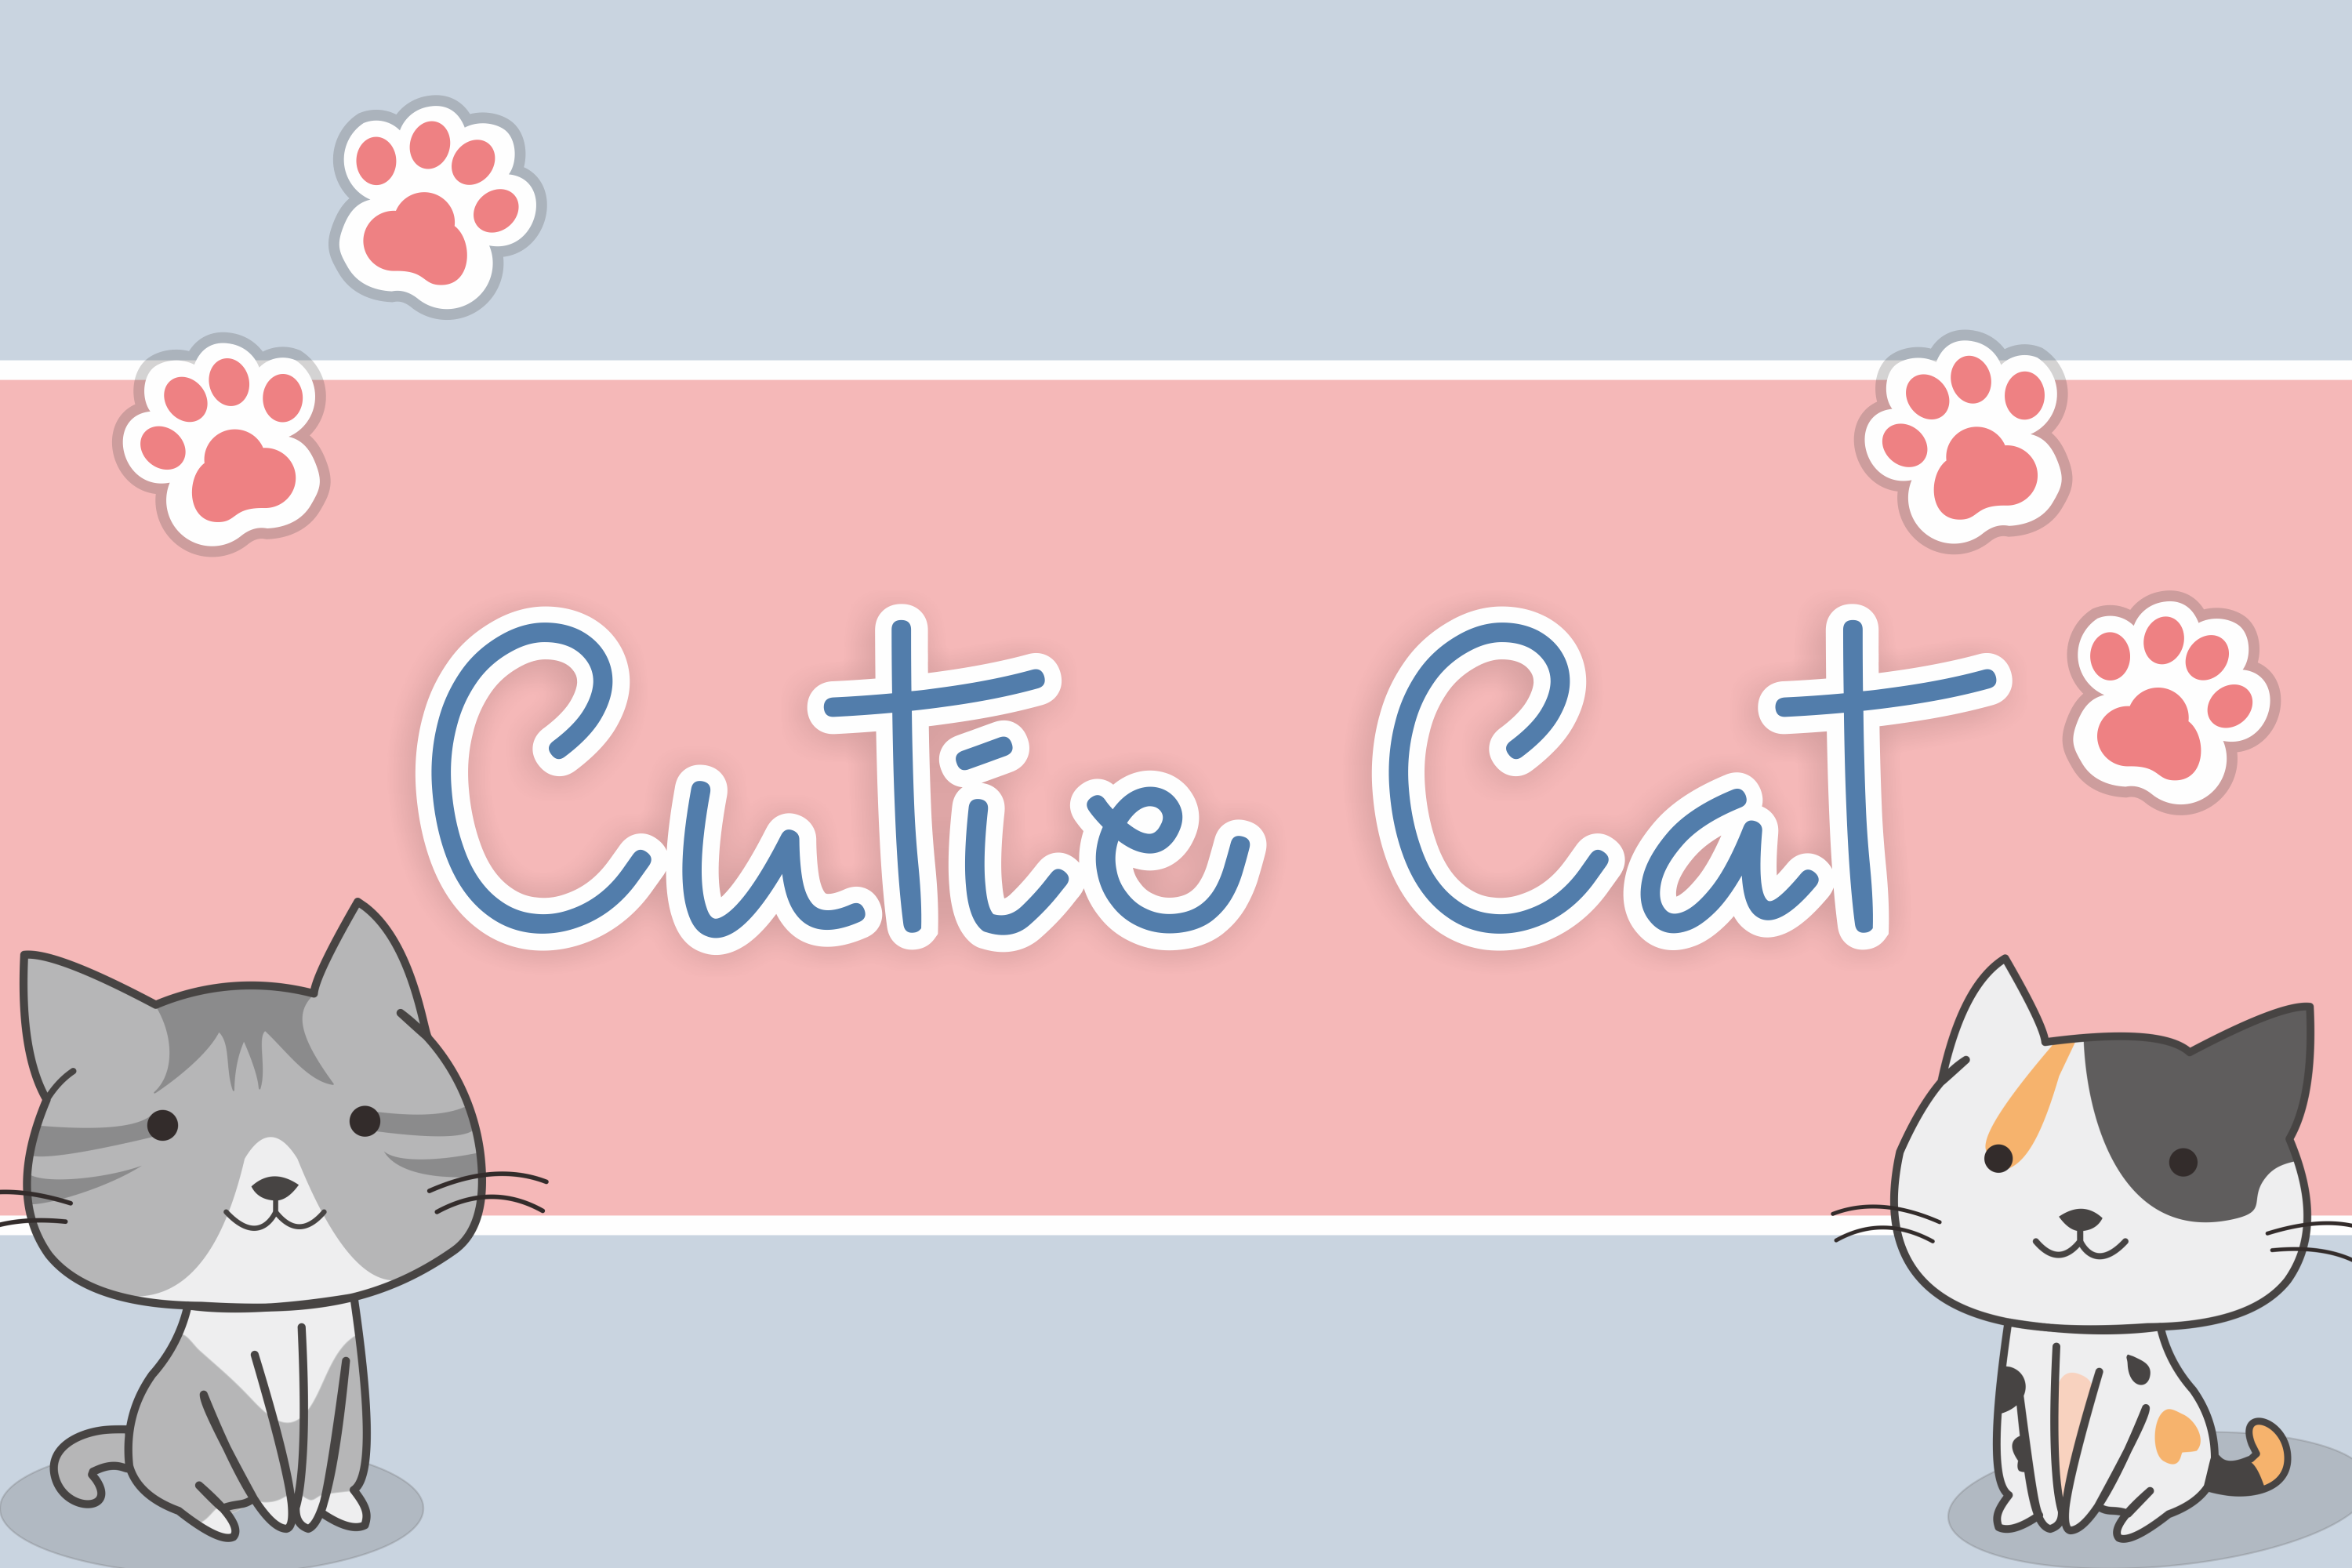 Download Free Cutie Cat Font By Nuraisyahamalia1729 Creative Fabrica for Cricut Explore, Silhouette and other cutting machines.